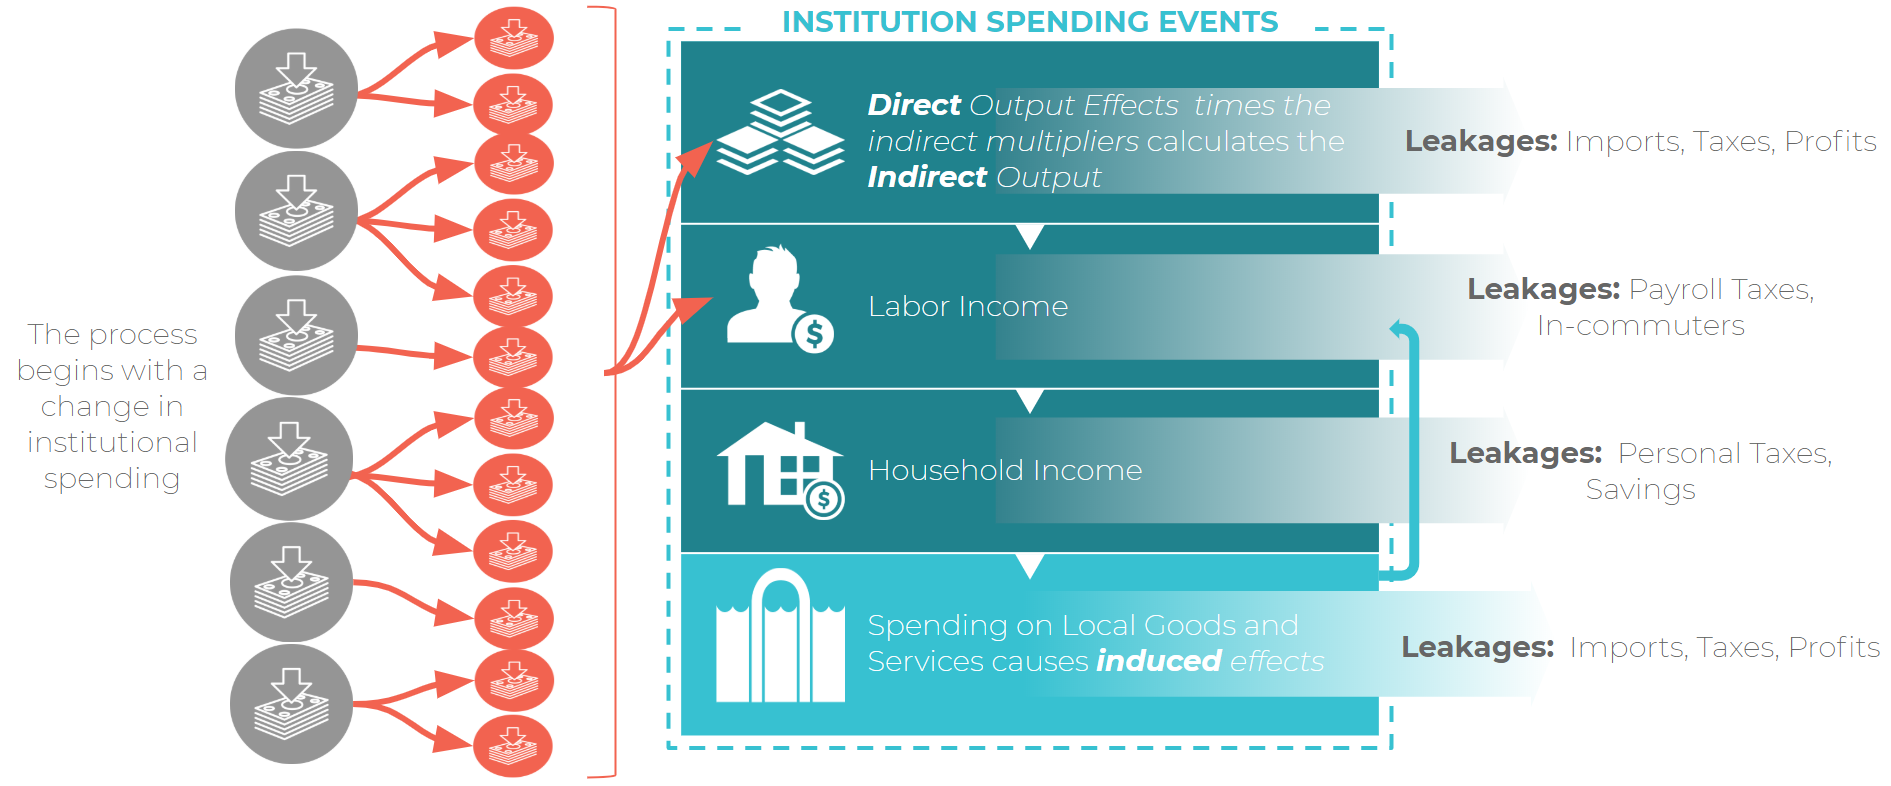 institution_spending_events.png